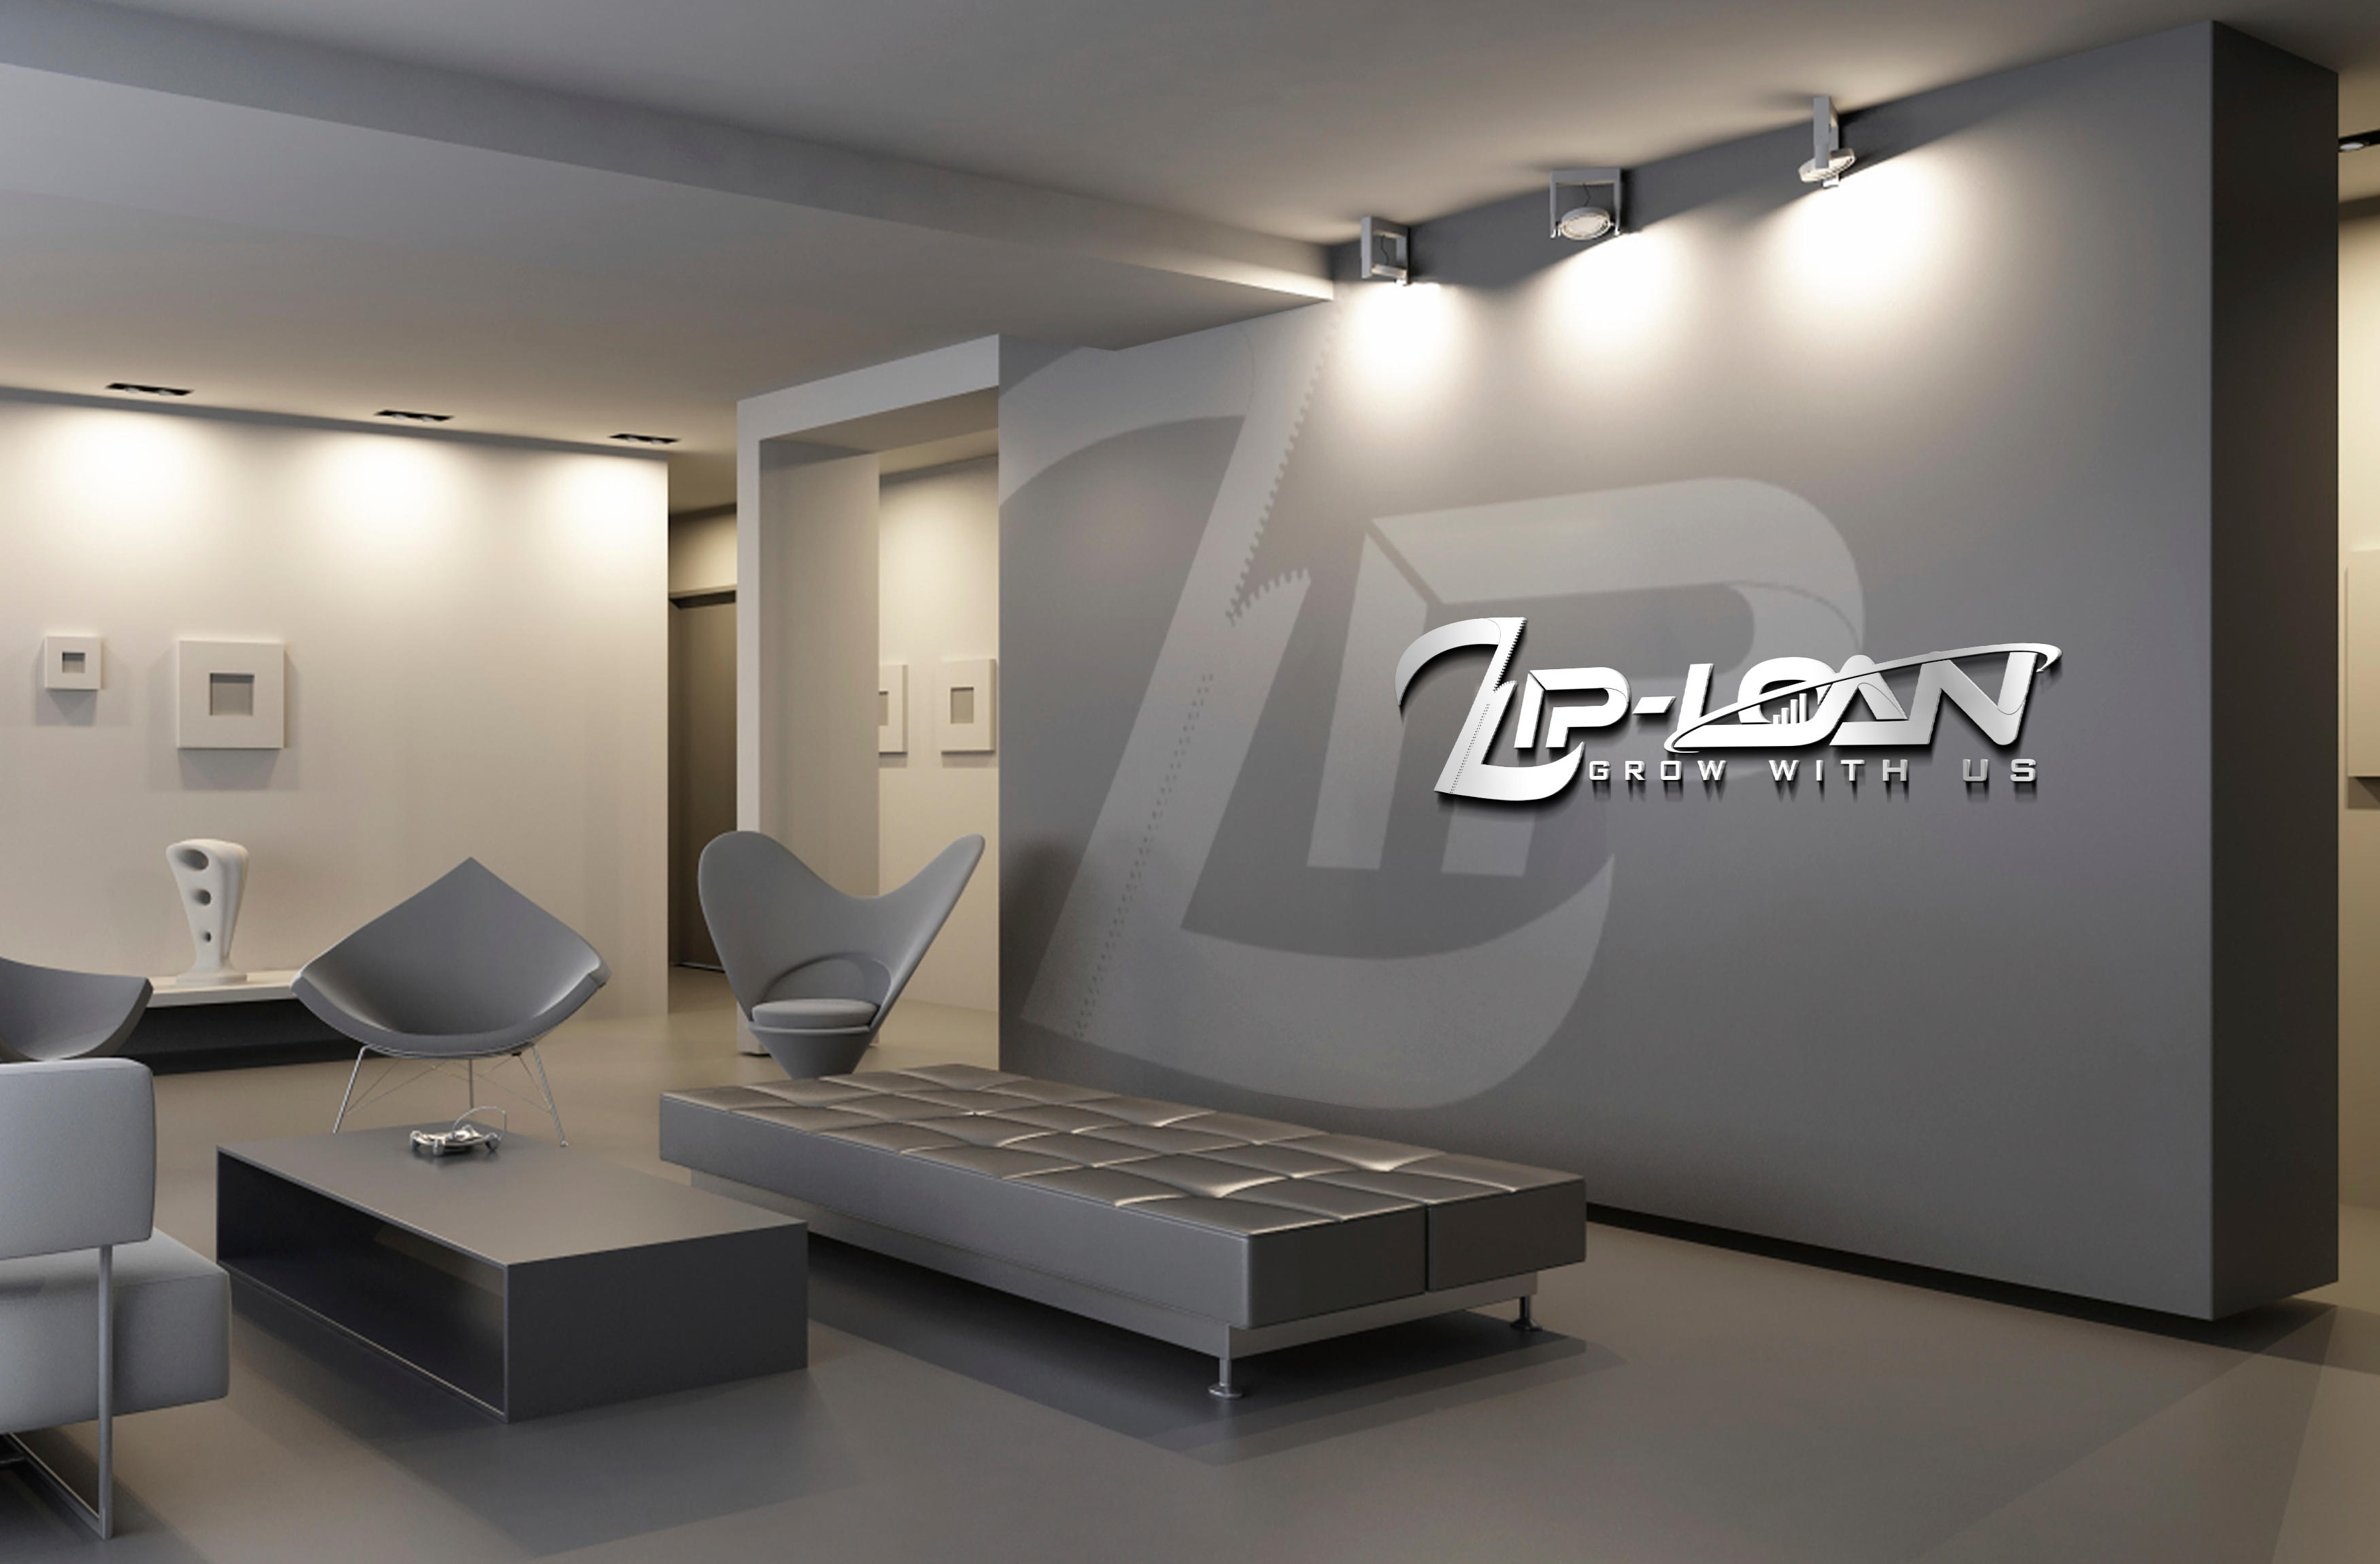 Zip Loan Powered by Consolidated Companies image 1